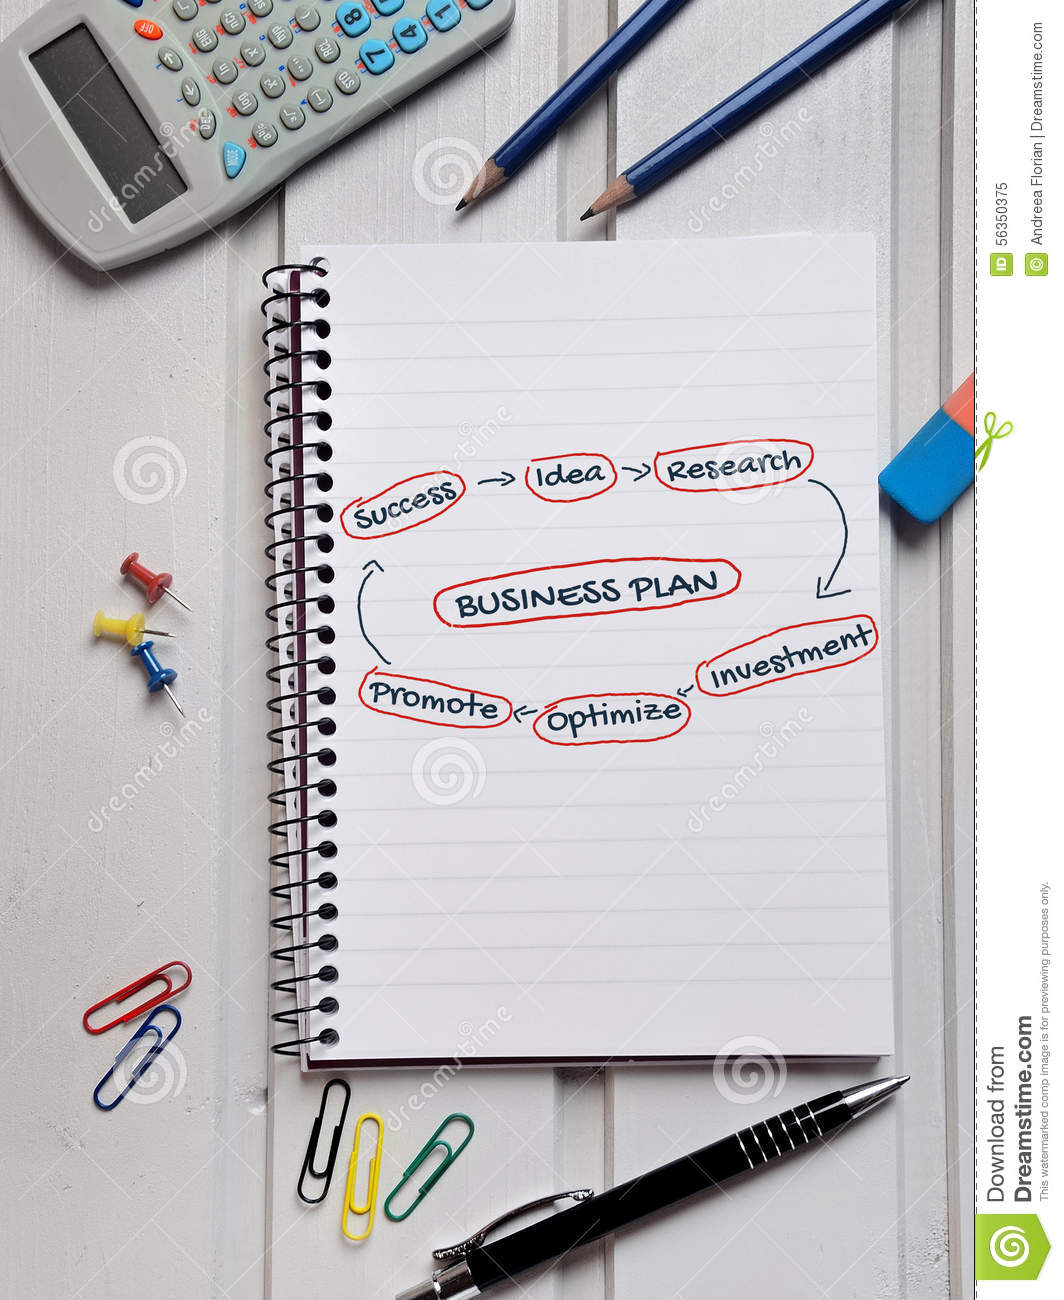 Business plan word stock image  Image of idea, gain, finance